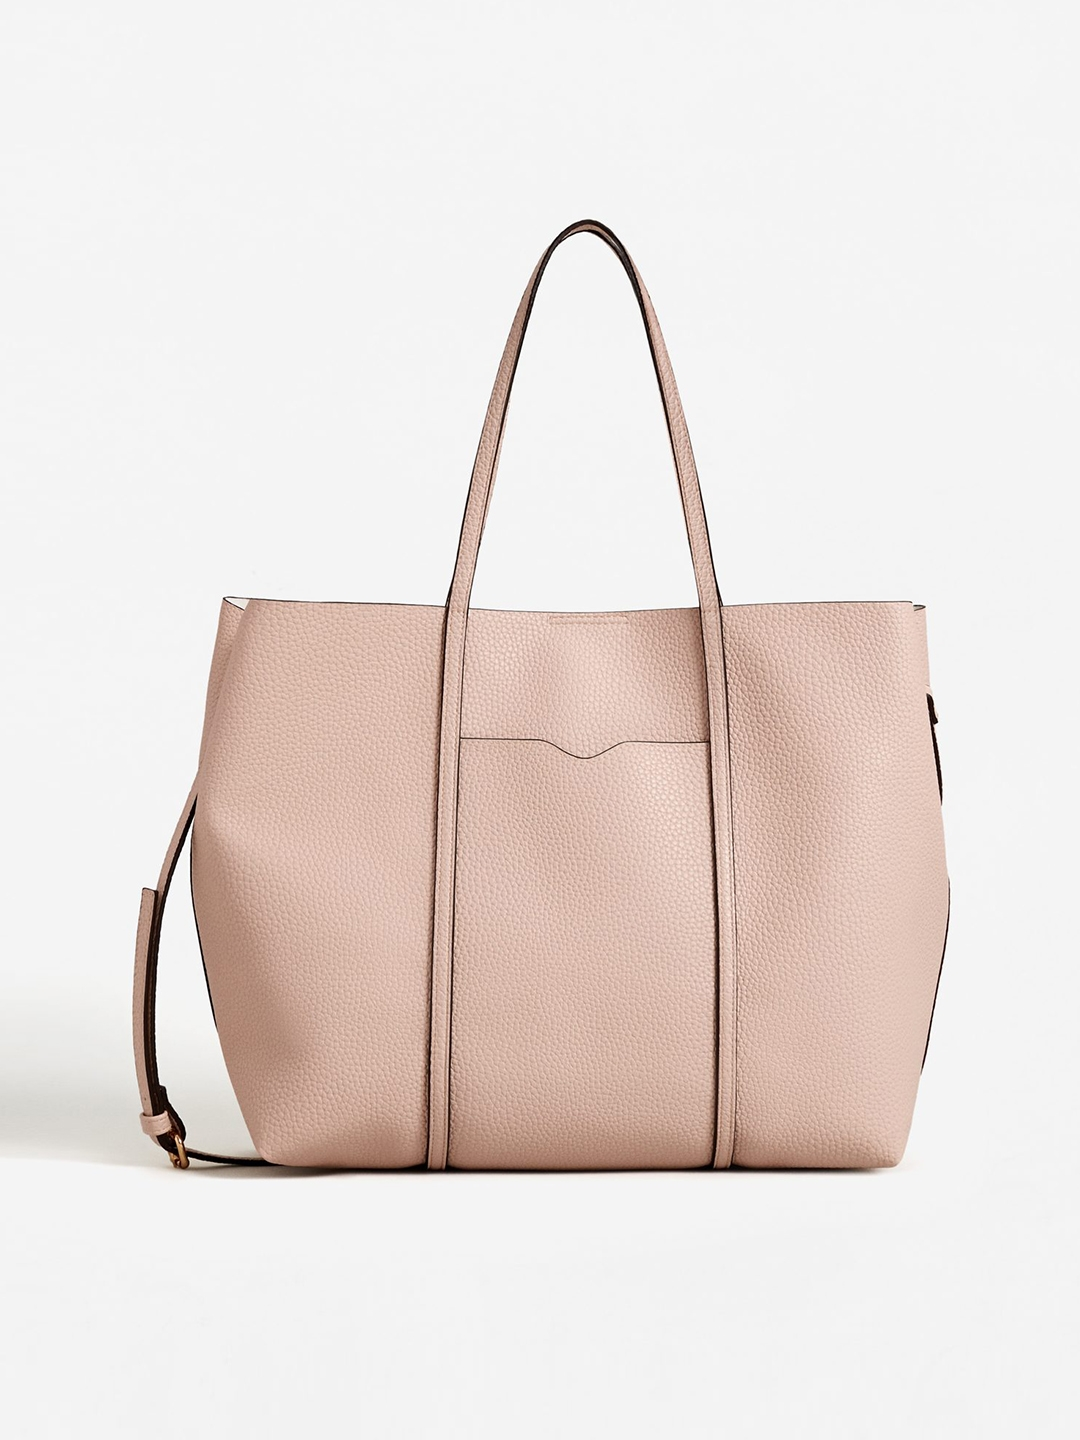 Carry essentials in style with women's purses and handbags from zulily,+ followers on Twitter.